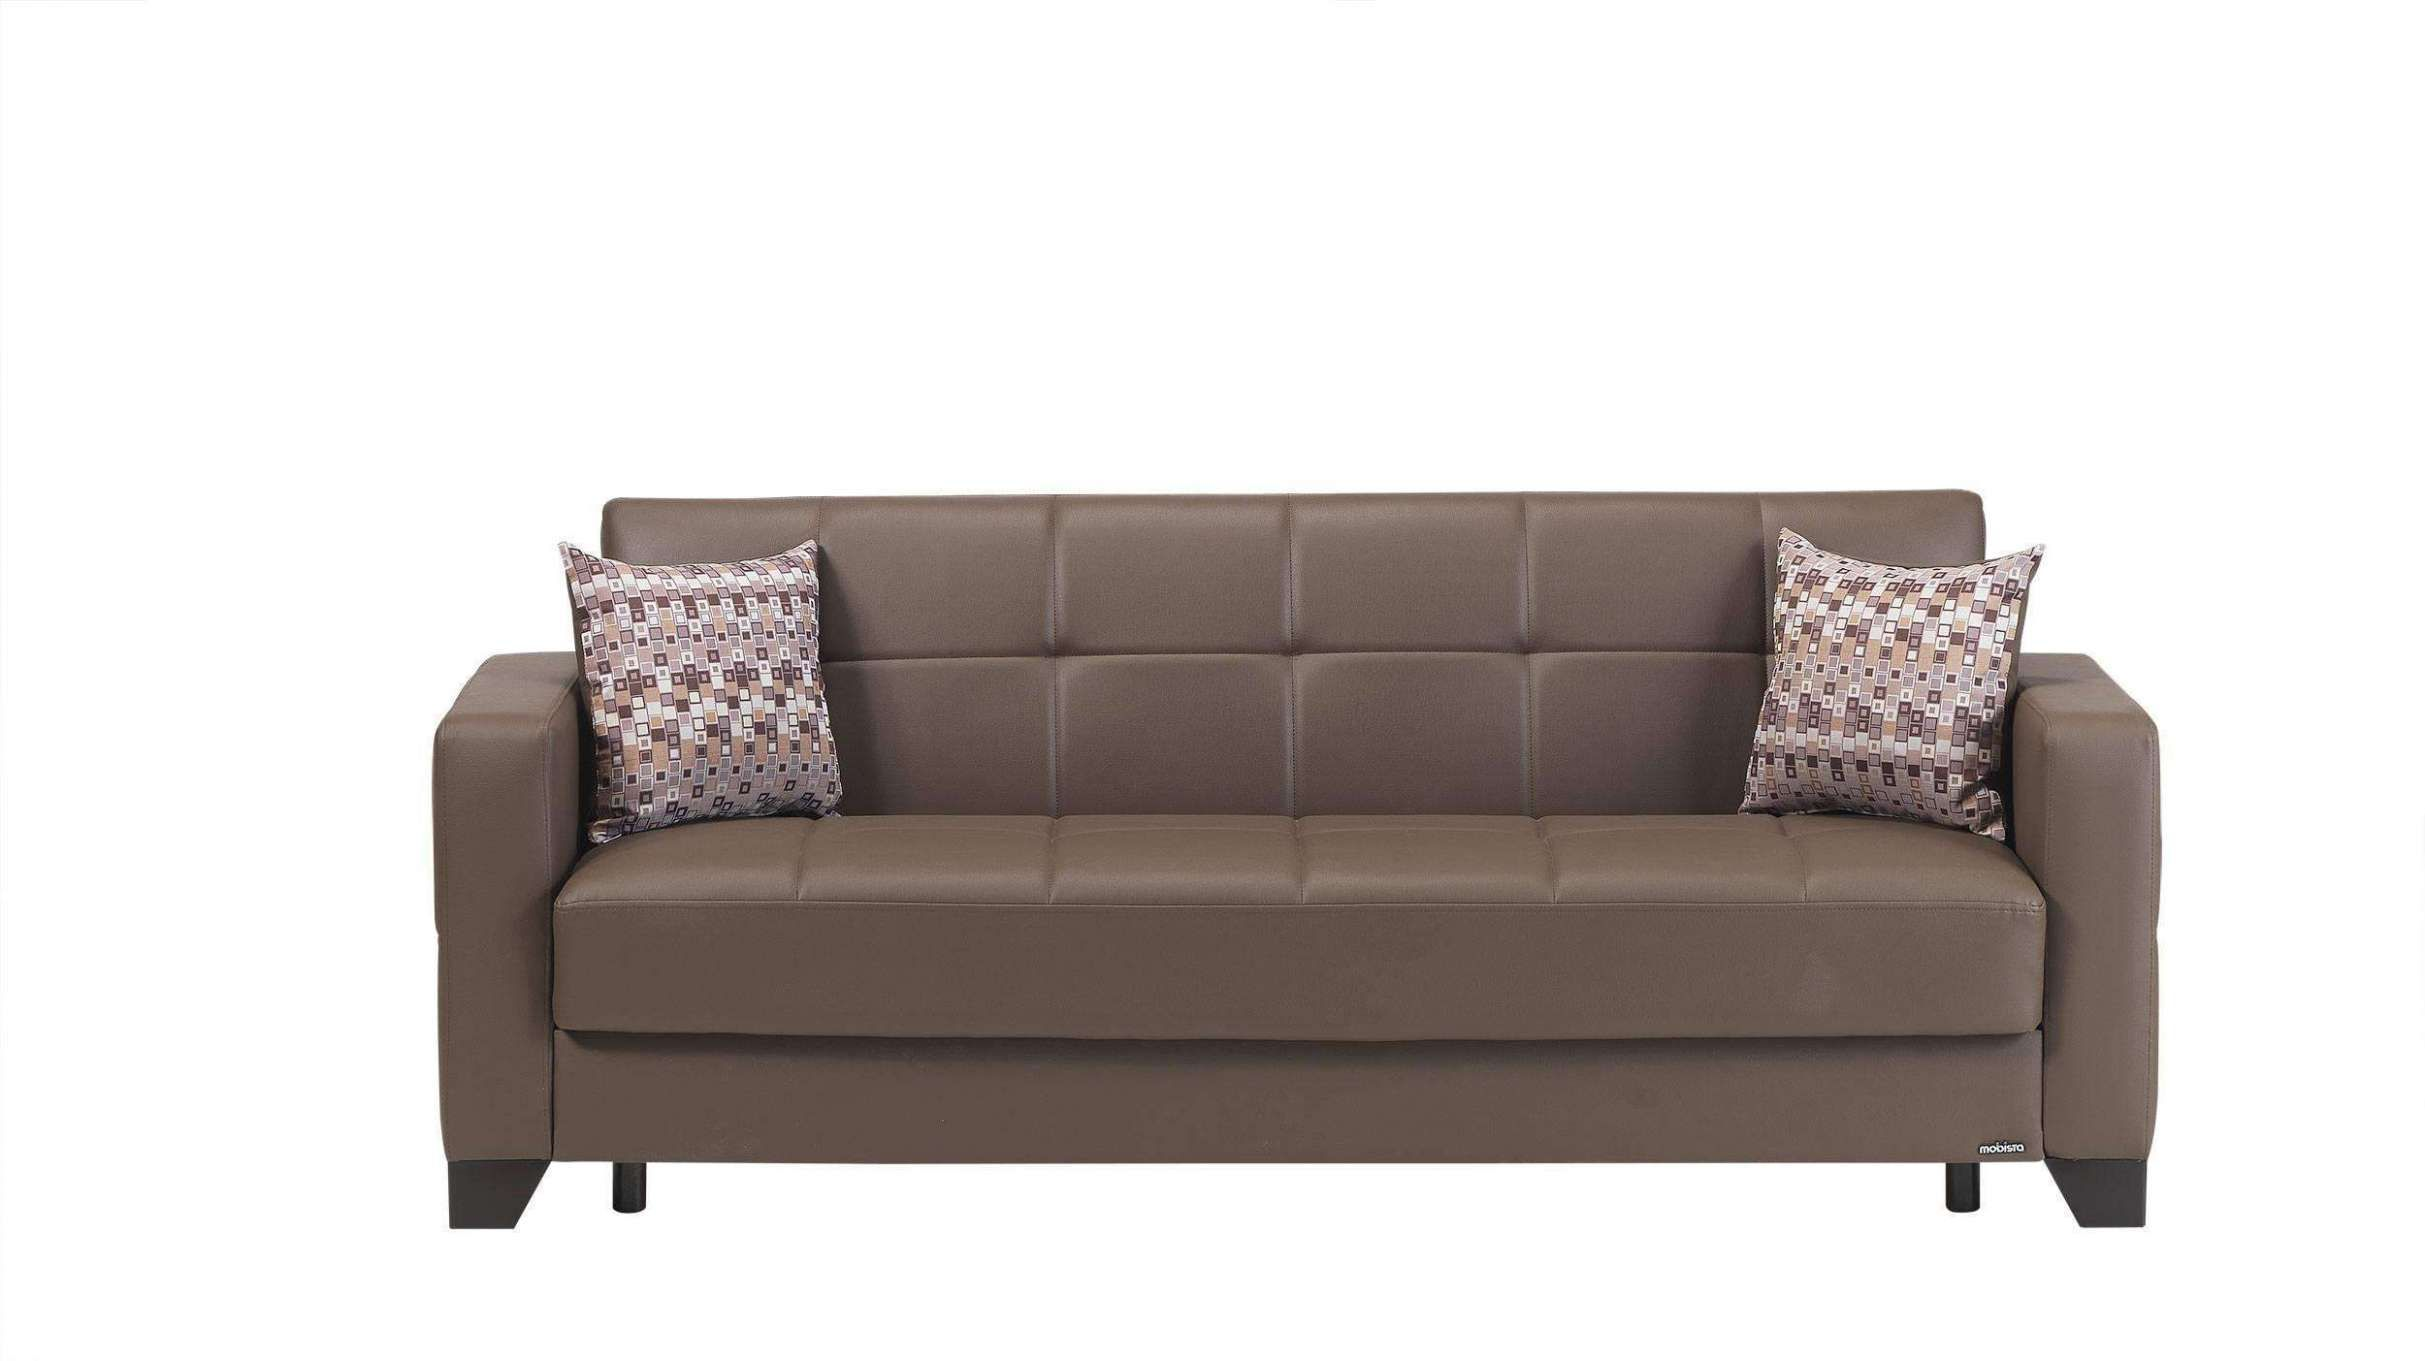 70er 70 Er Jahre Mobel Skandinavische Mobel Sofa Yct Projekte In 2020 Sofa And Loveseat Set Sofa Bed Memory Foam Sofa Design